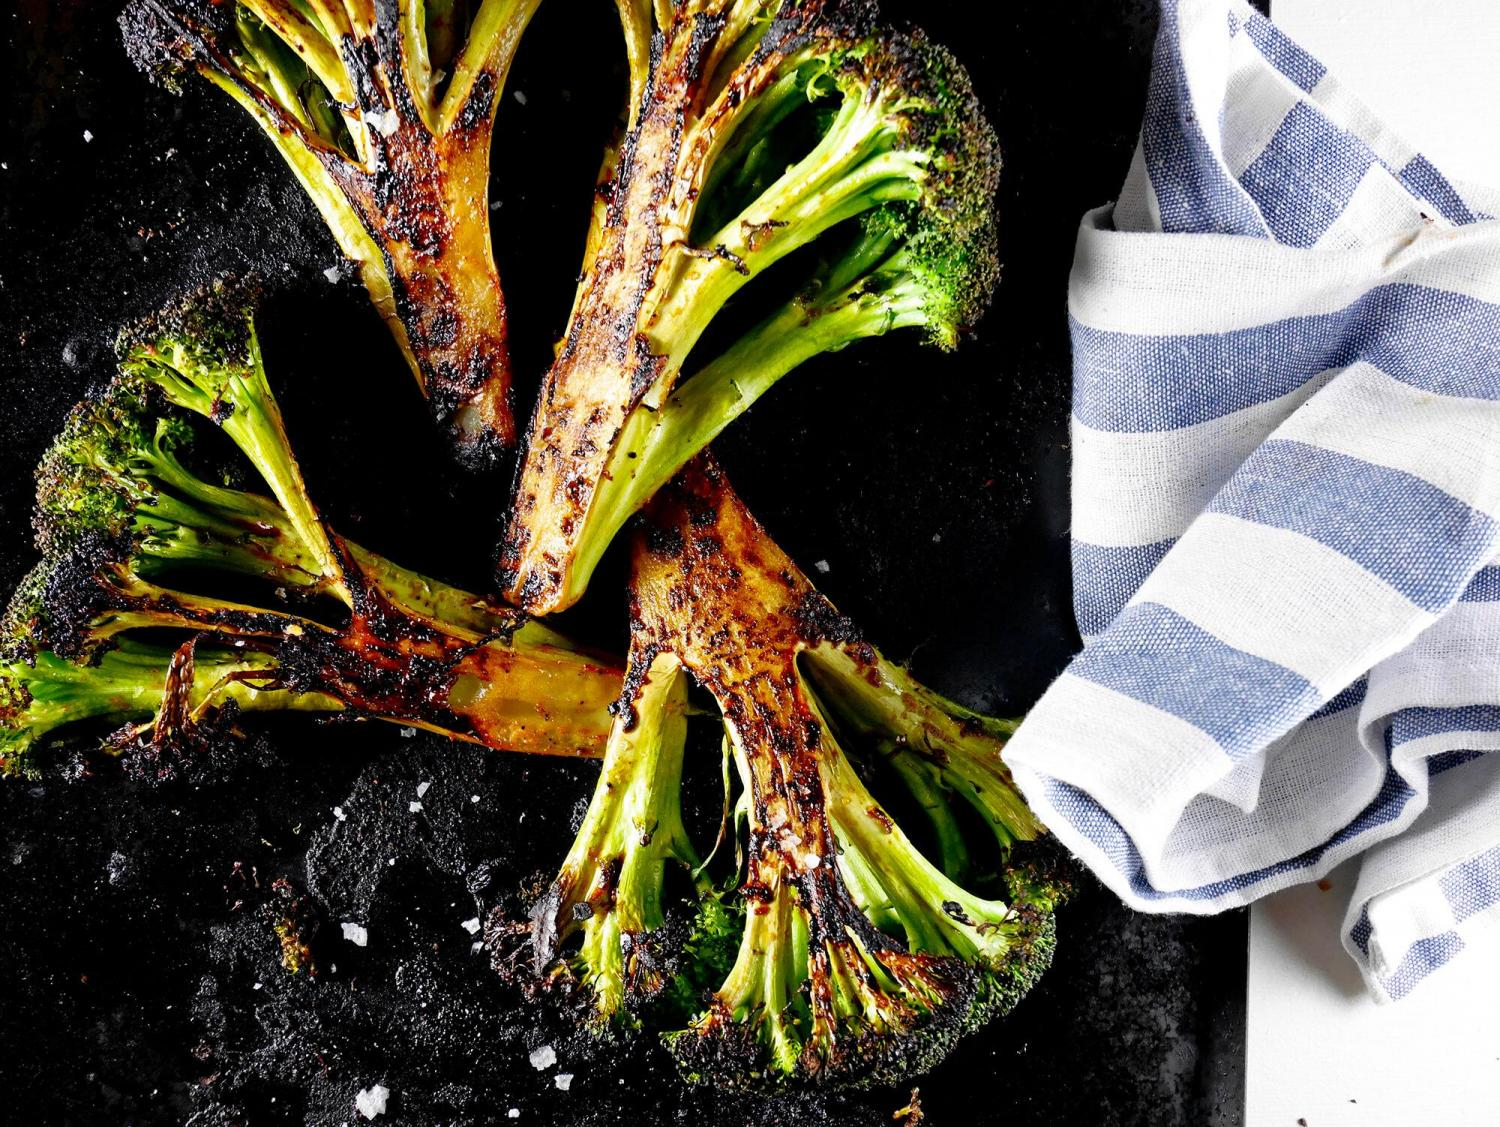 roasted broccoli on black plate with blue and white striped cloth napkin